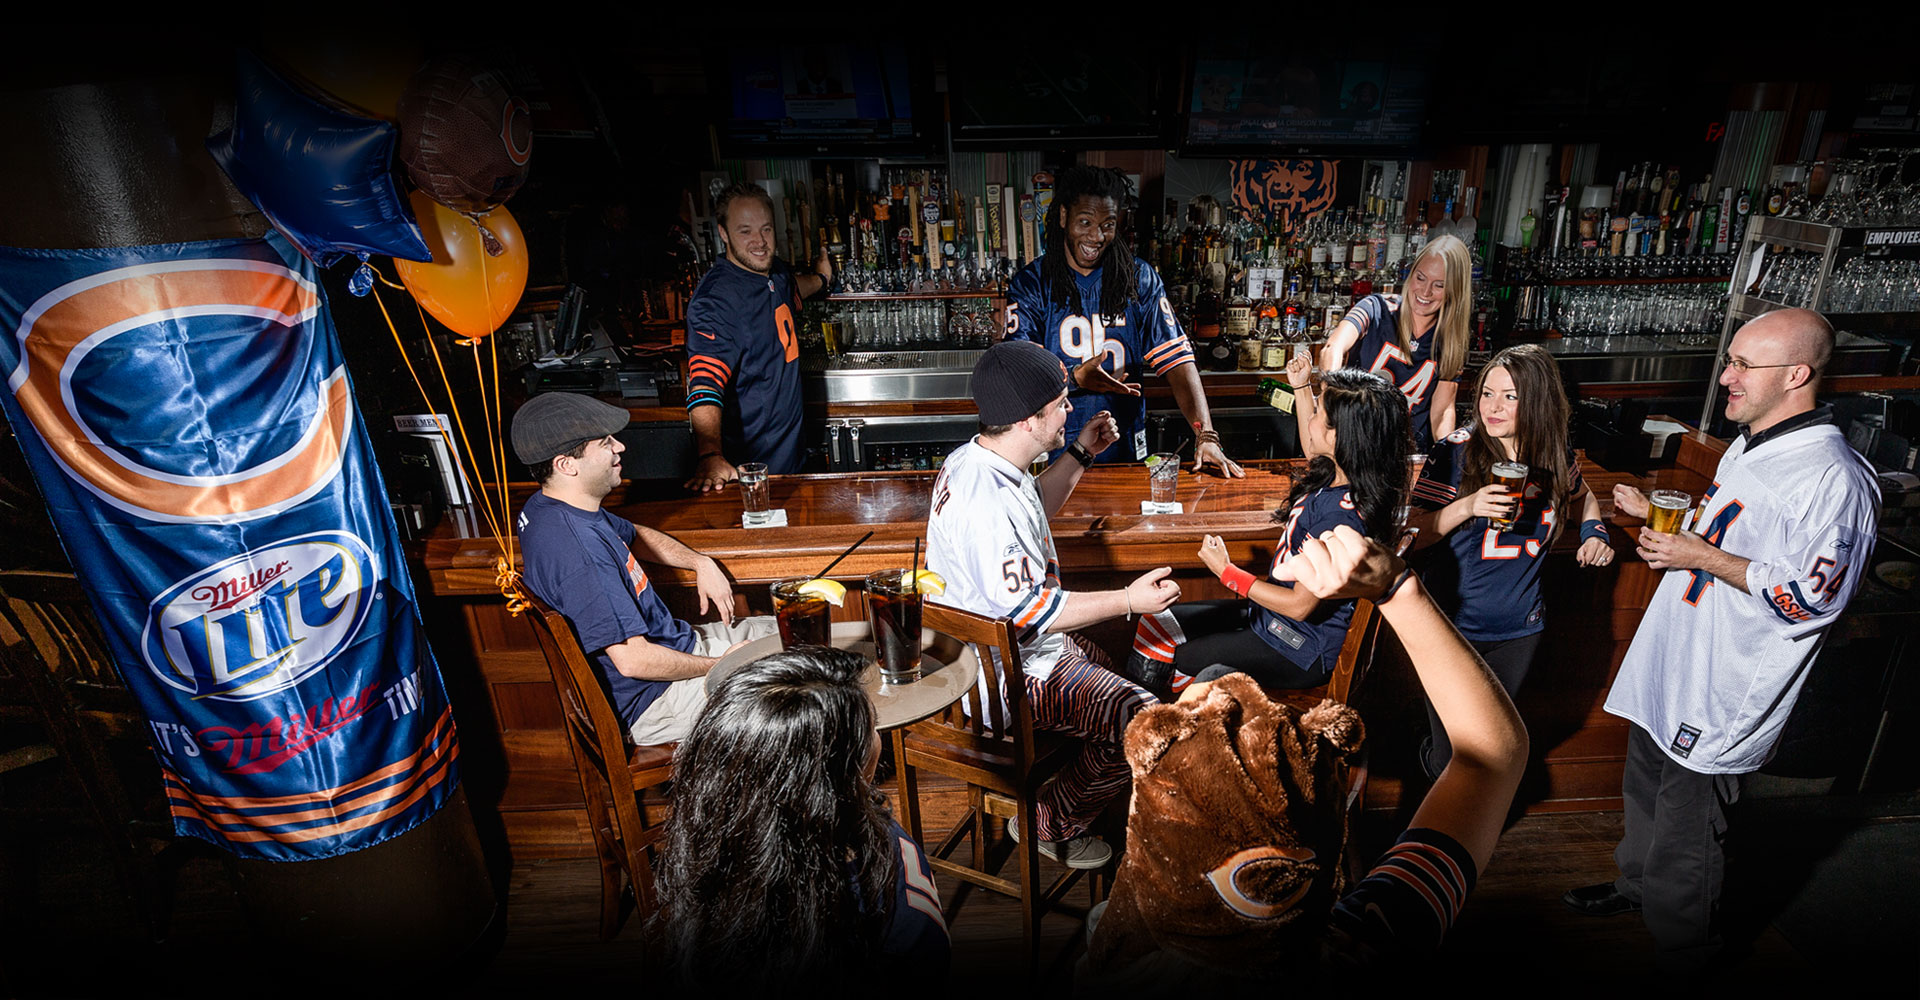 We are Chicago's Best Bears Bar. Take our shuttle to Soldier Field for all the Bears home games.